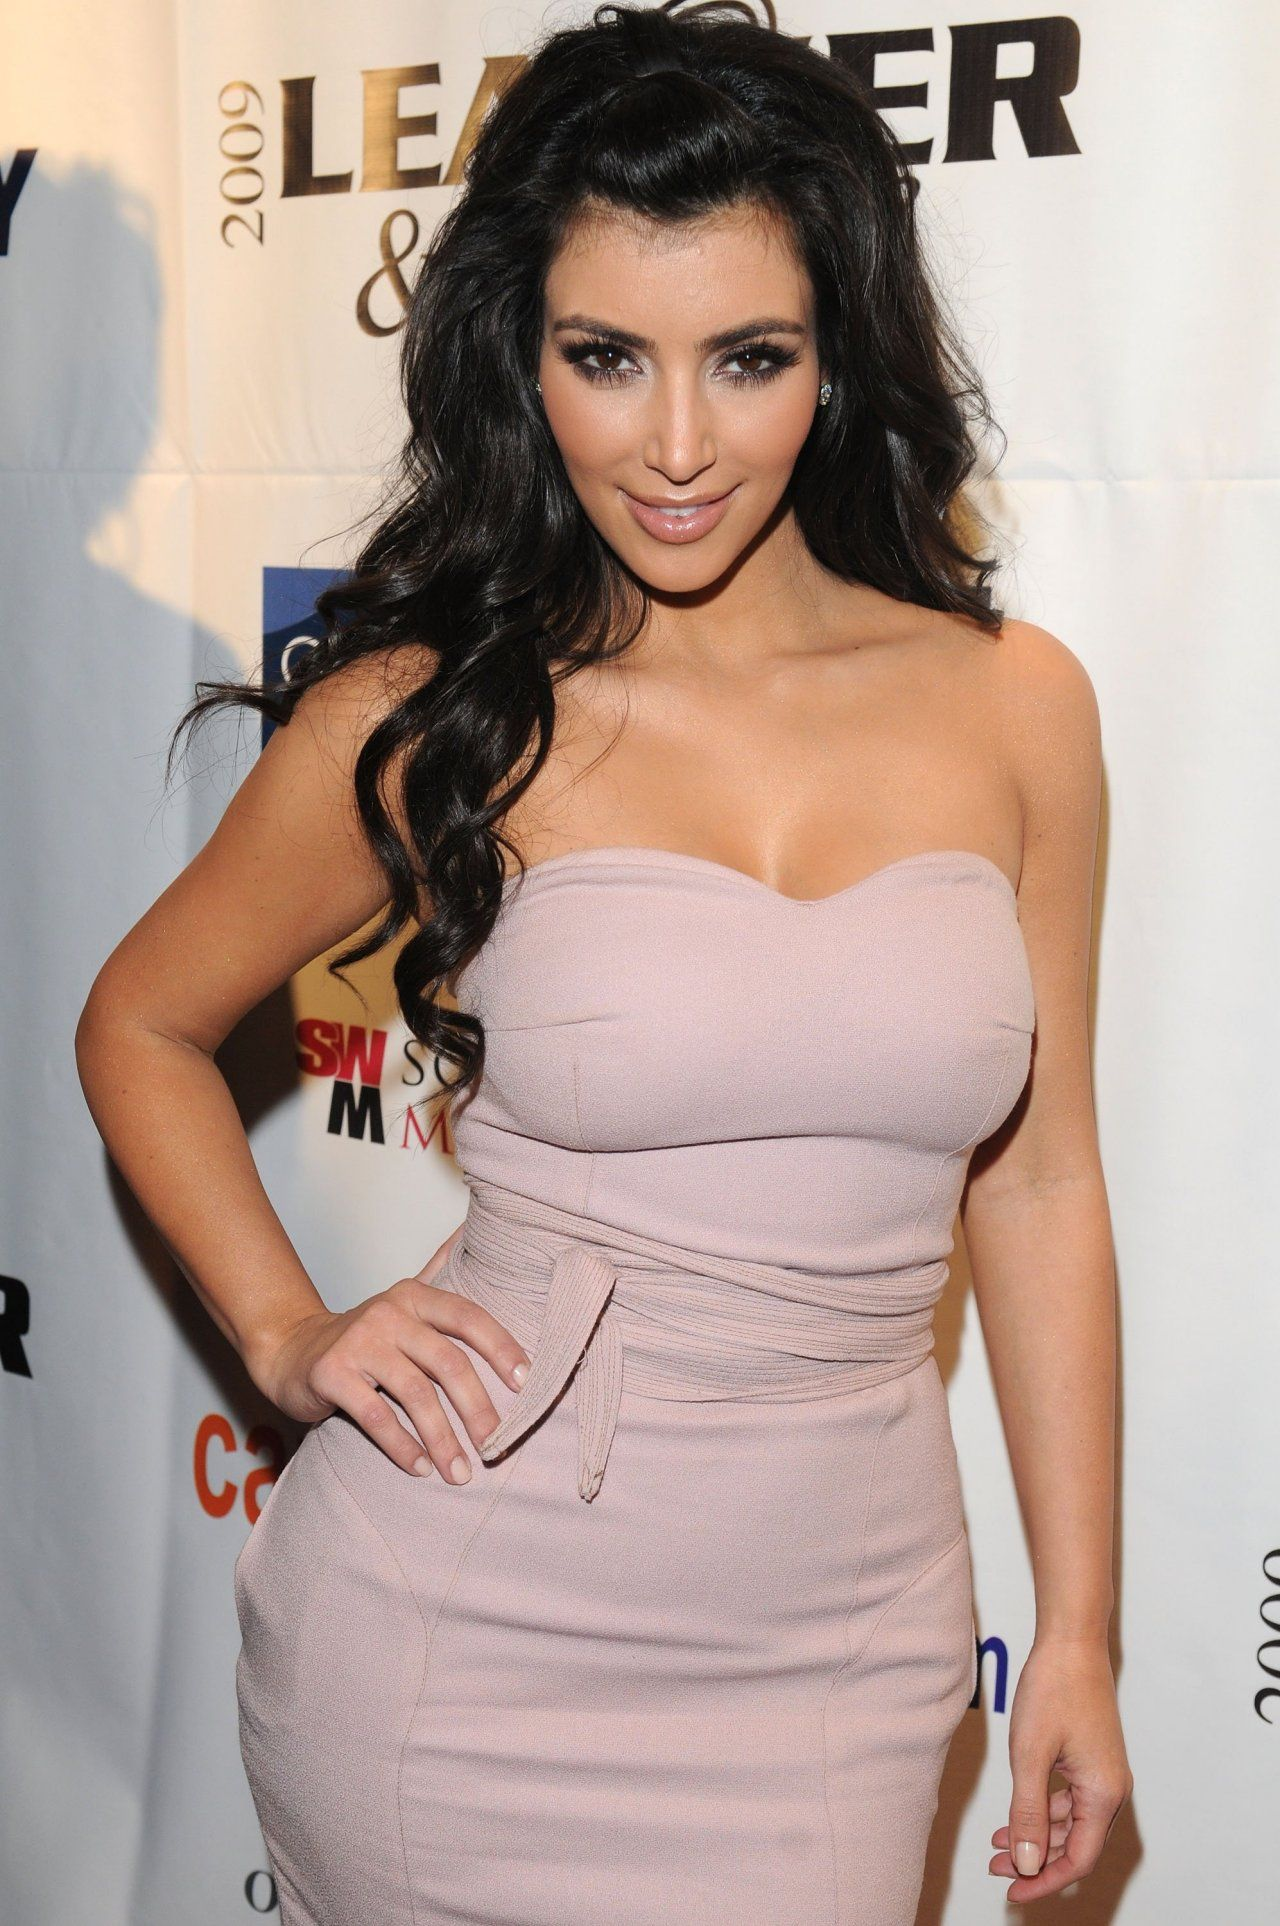 Kim Kardashian - Curves that make your palms sweat. Cause my hands to  auto-cup and prepare for a  whose your daddy  motion. aa5d37e09